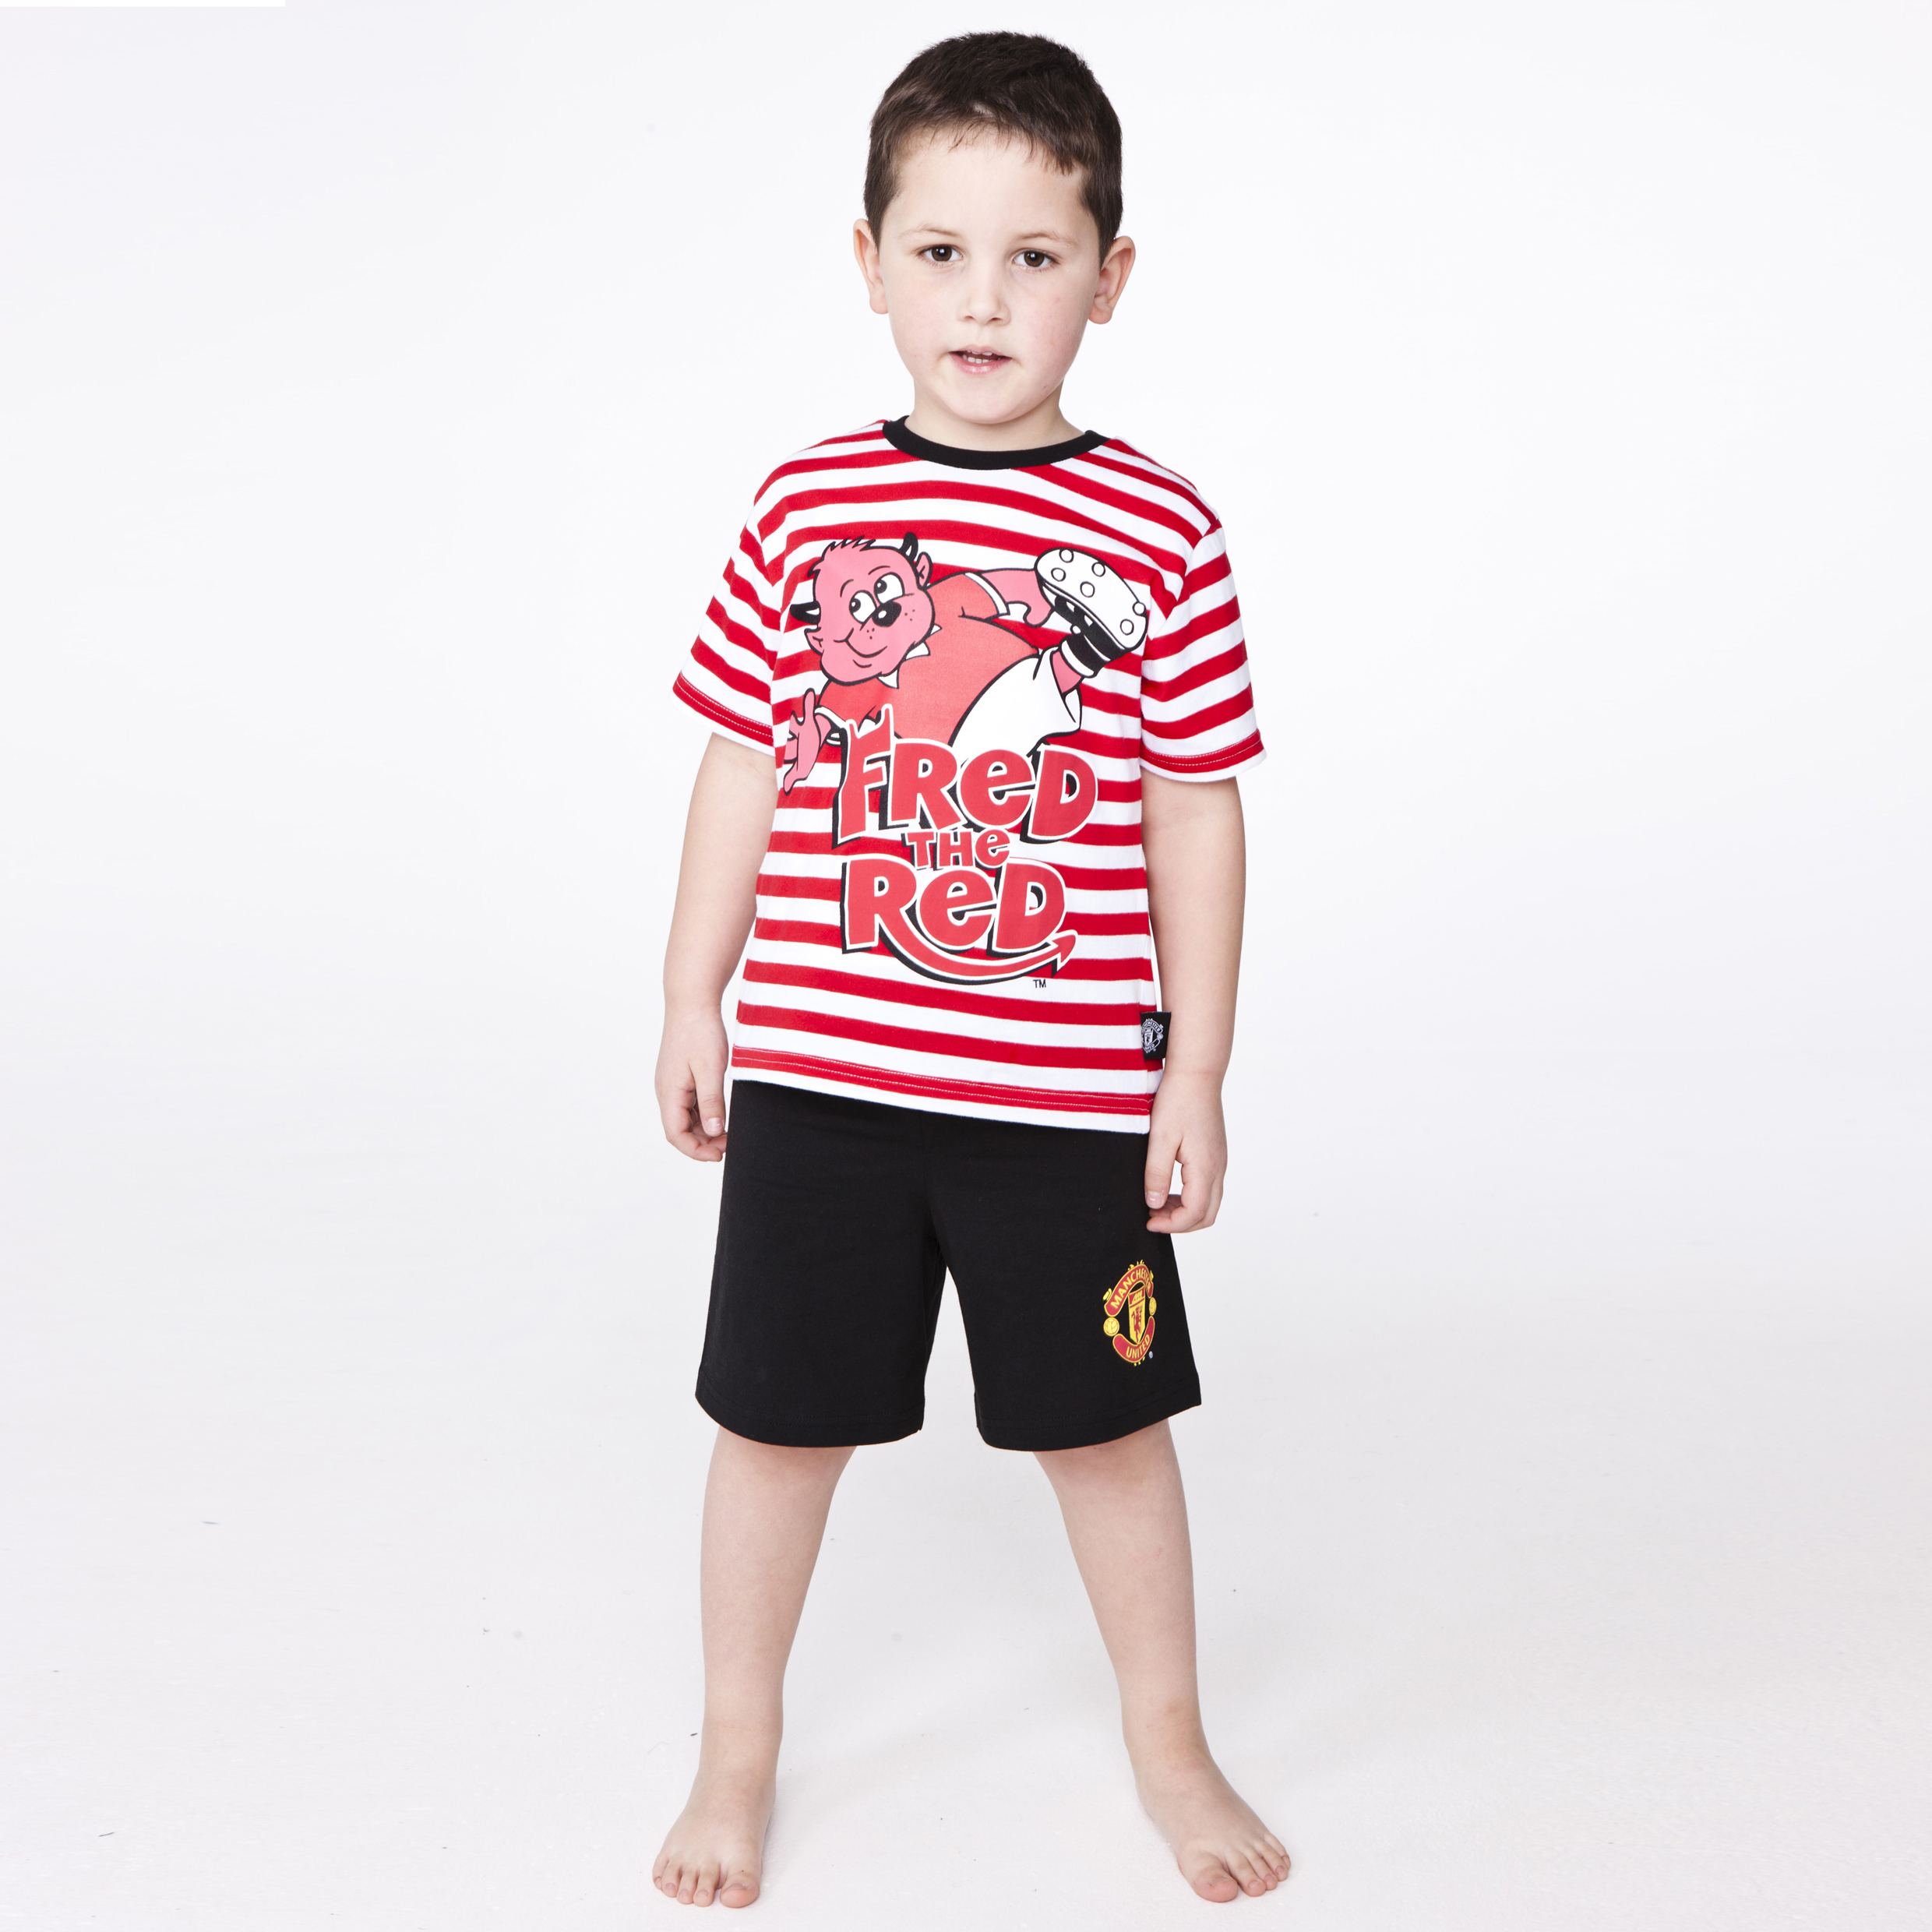 Manchester United Fred the Red Pyjamas - Infant Boys